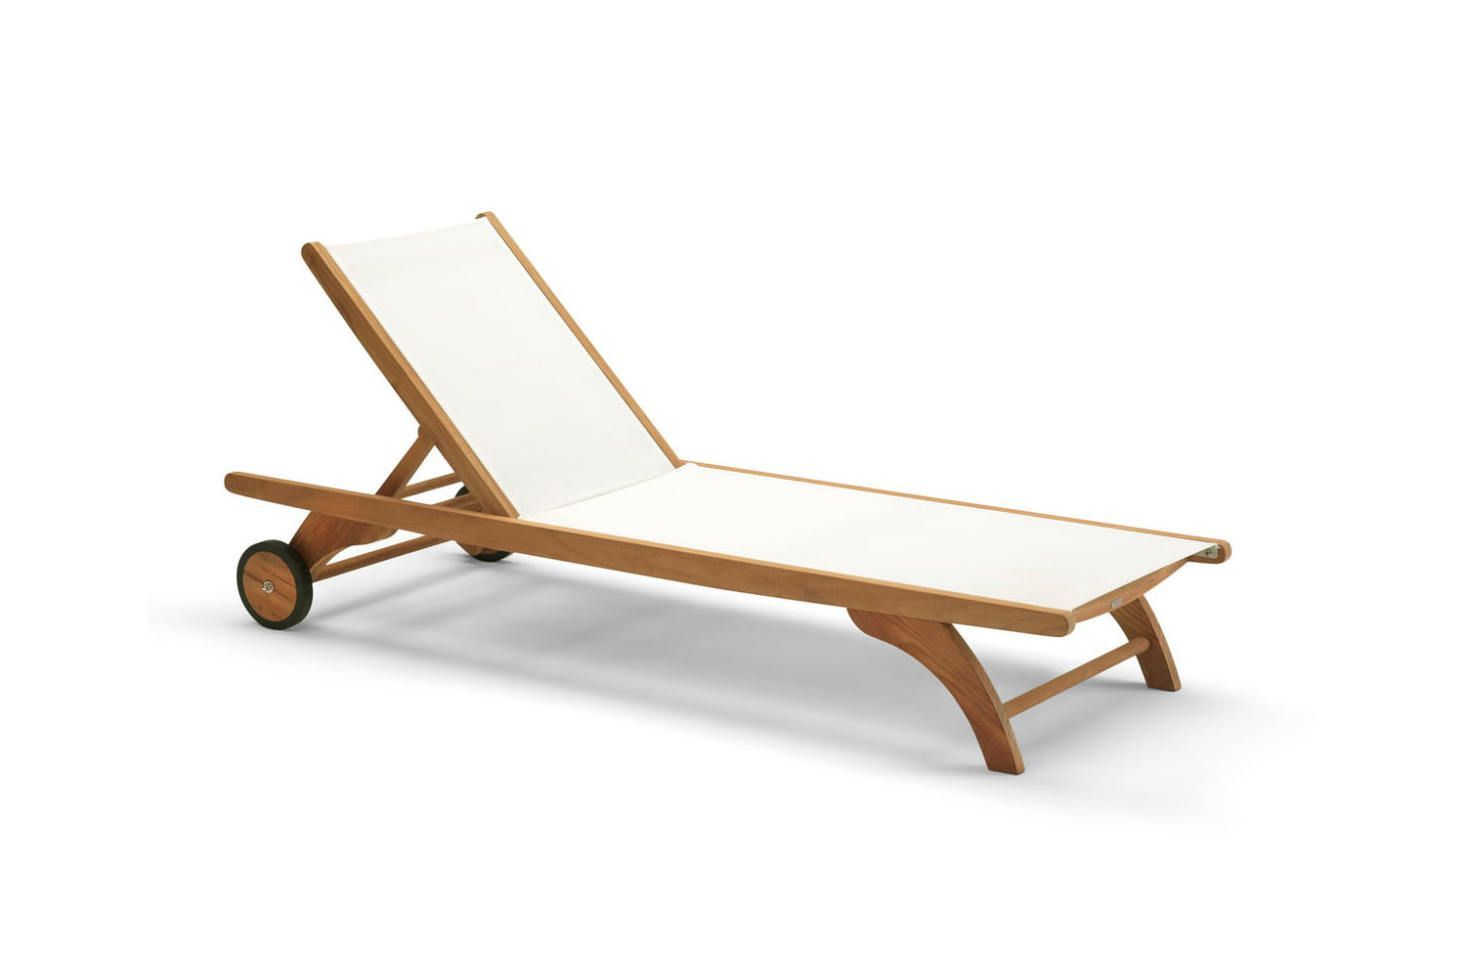 10 Easy Pieces Teakwood Chaise Lounges With Images Outdoor